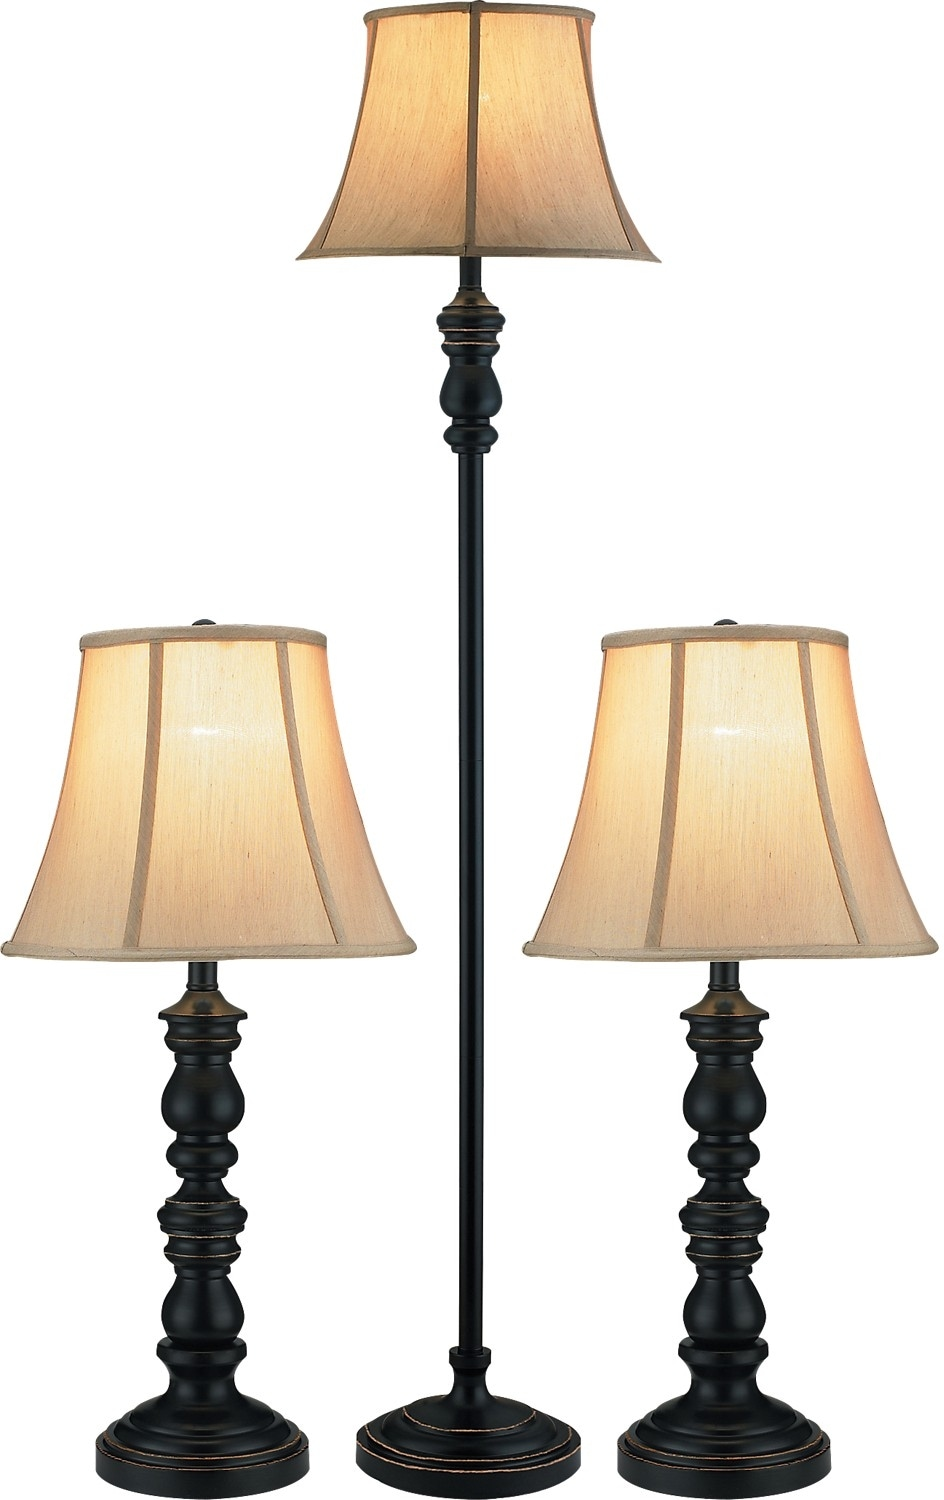 Black With Gold Accents 3 Piece Floor And Two Table Lamps